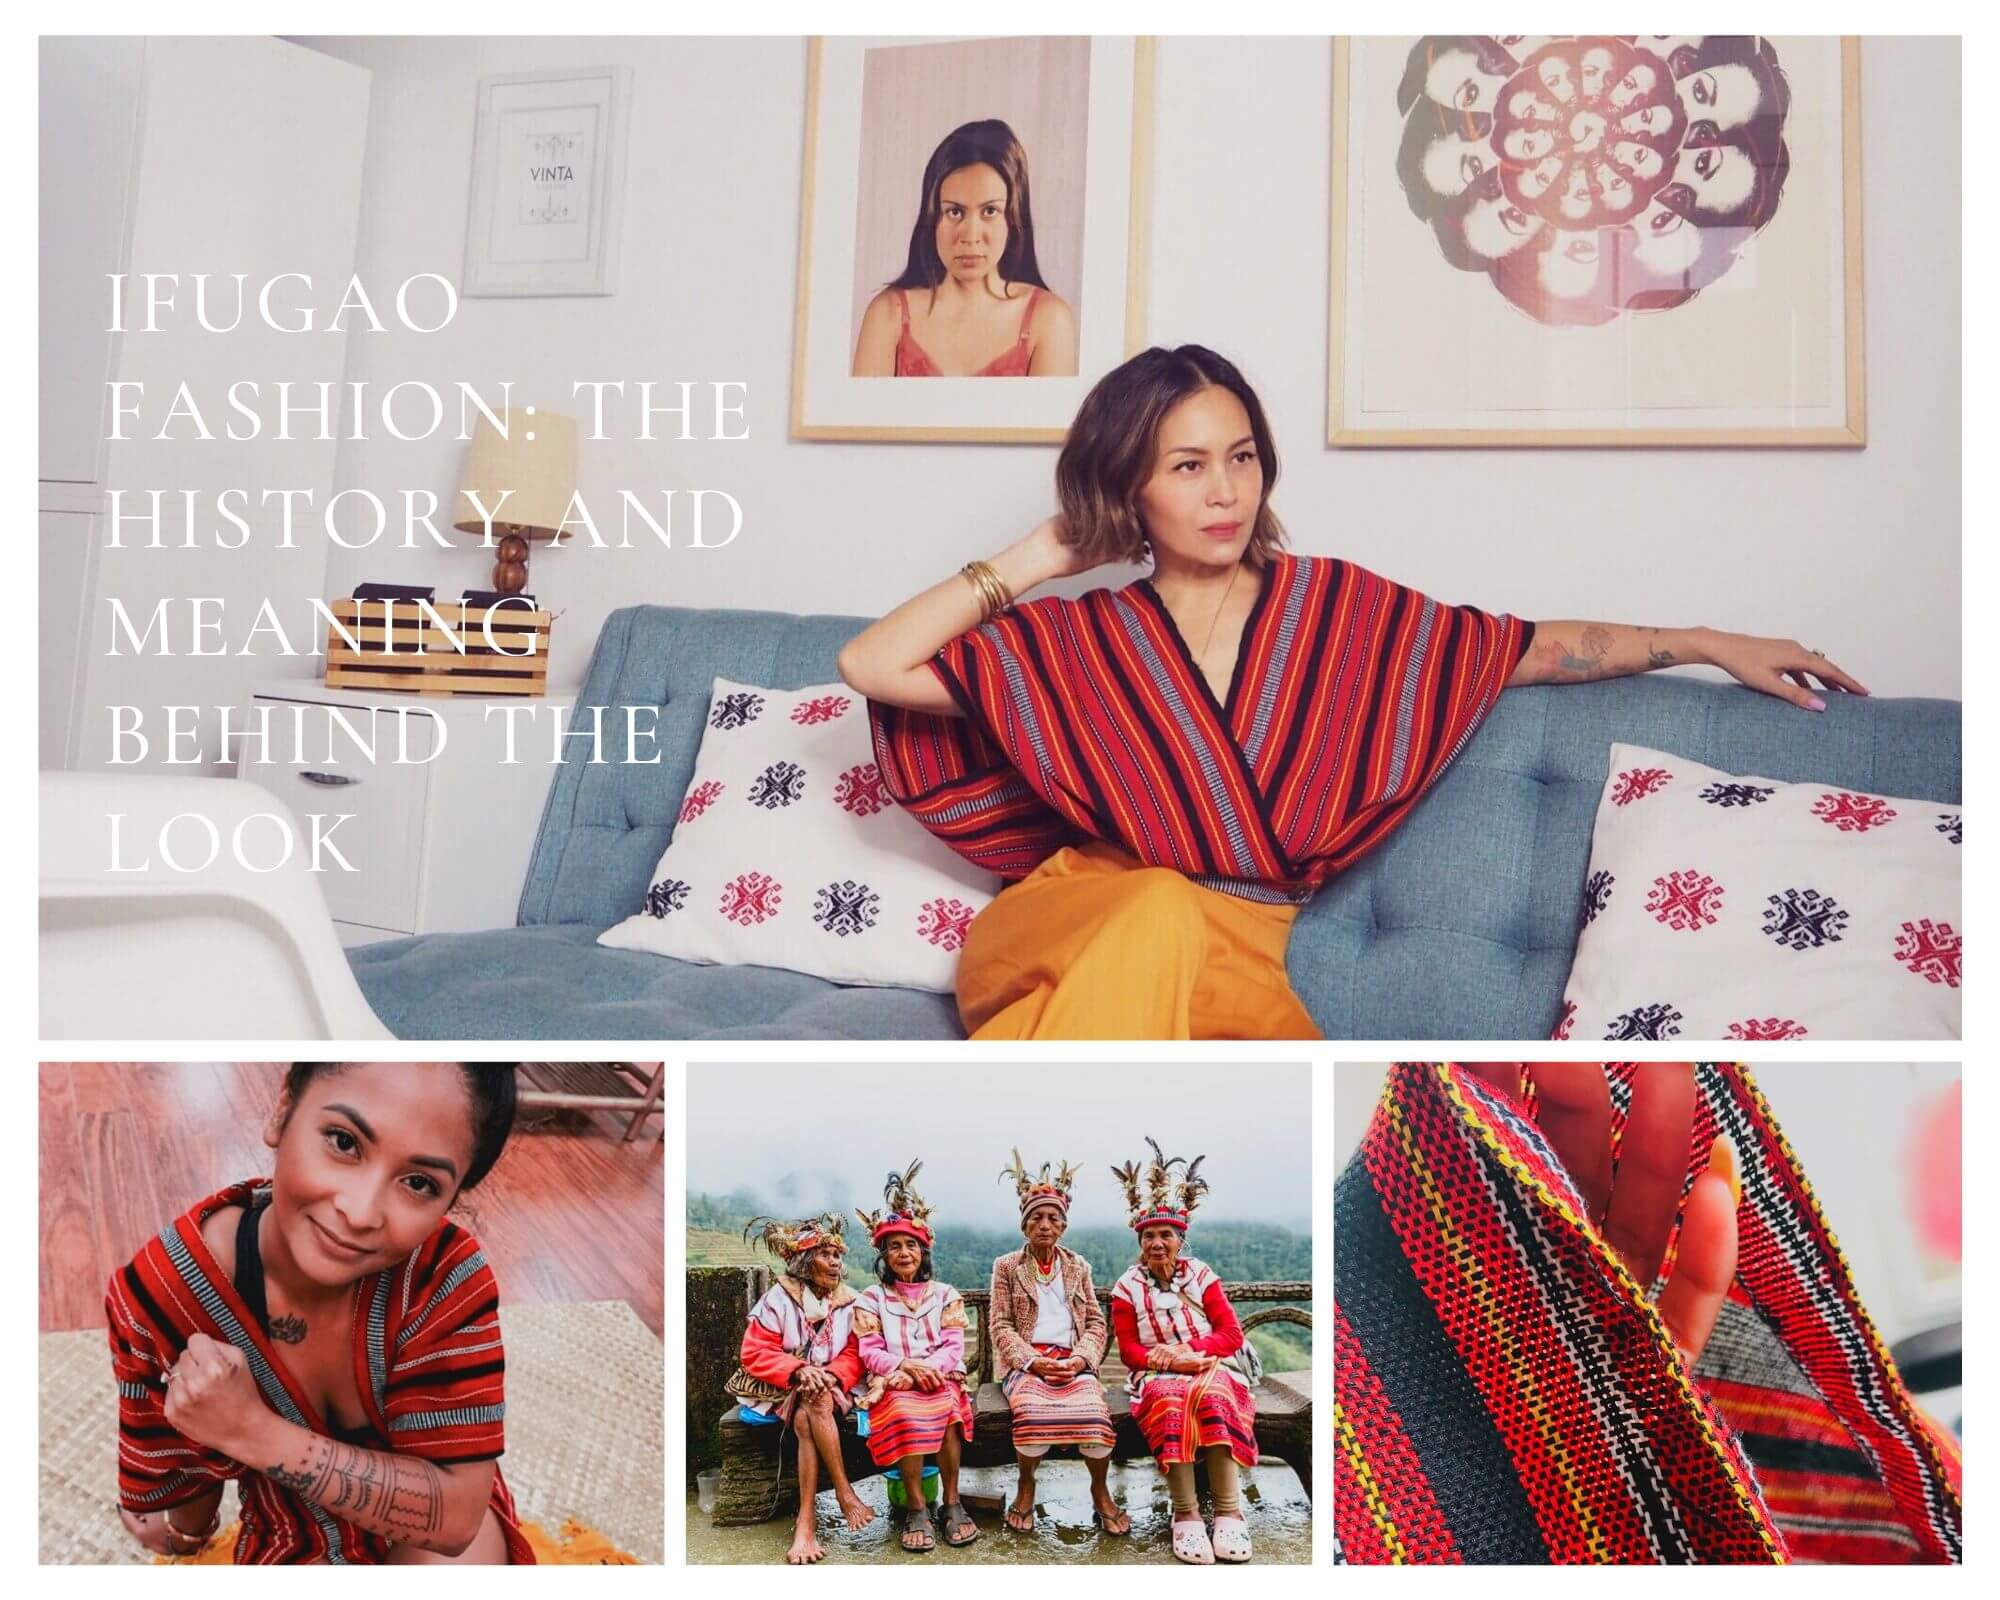 VINTA Ifugao Fashion - The History and Meaning Blog Post